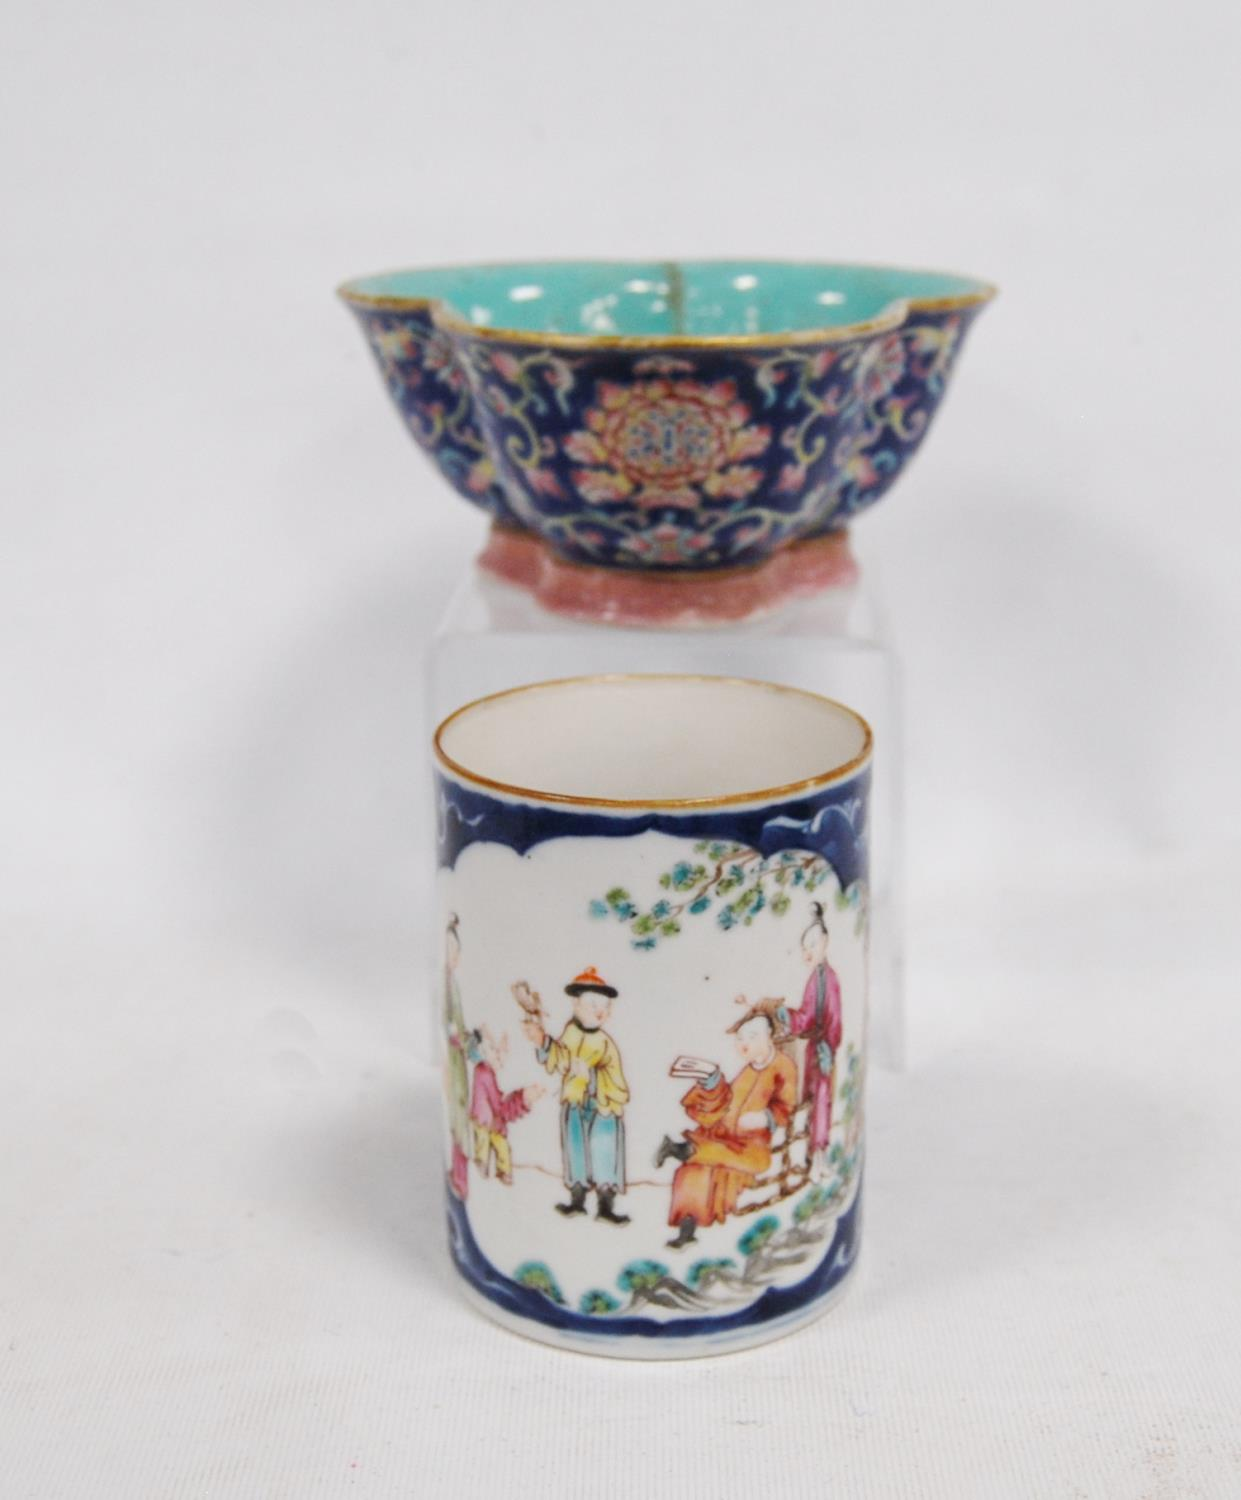 Trefoil bowl decorated with chrysanthemums over blue ground, pink scrolling foot, turquoise inner,